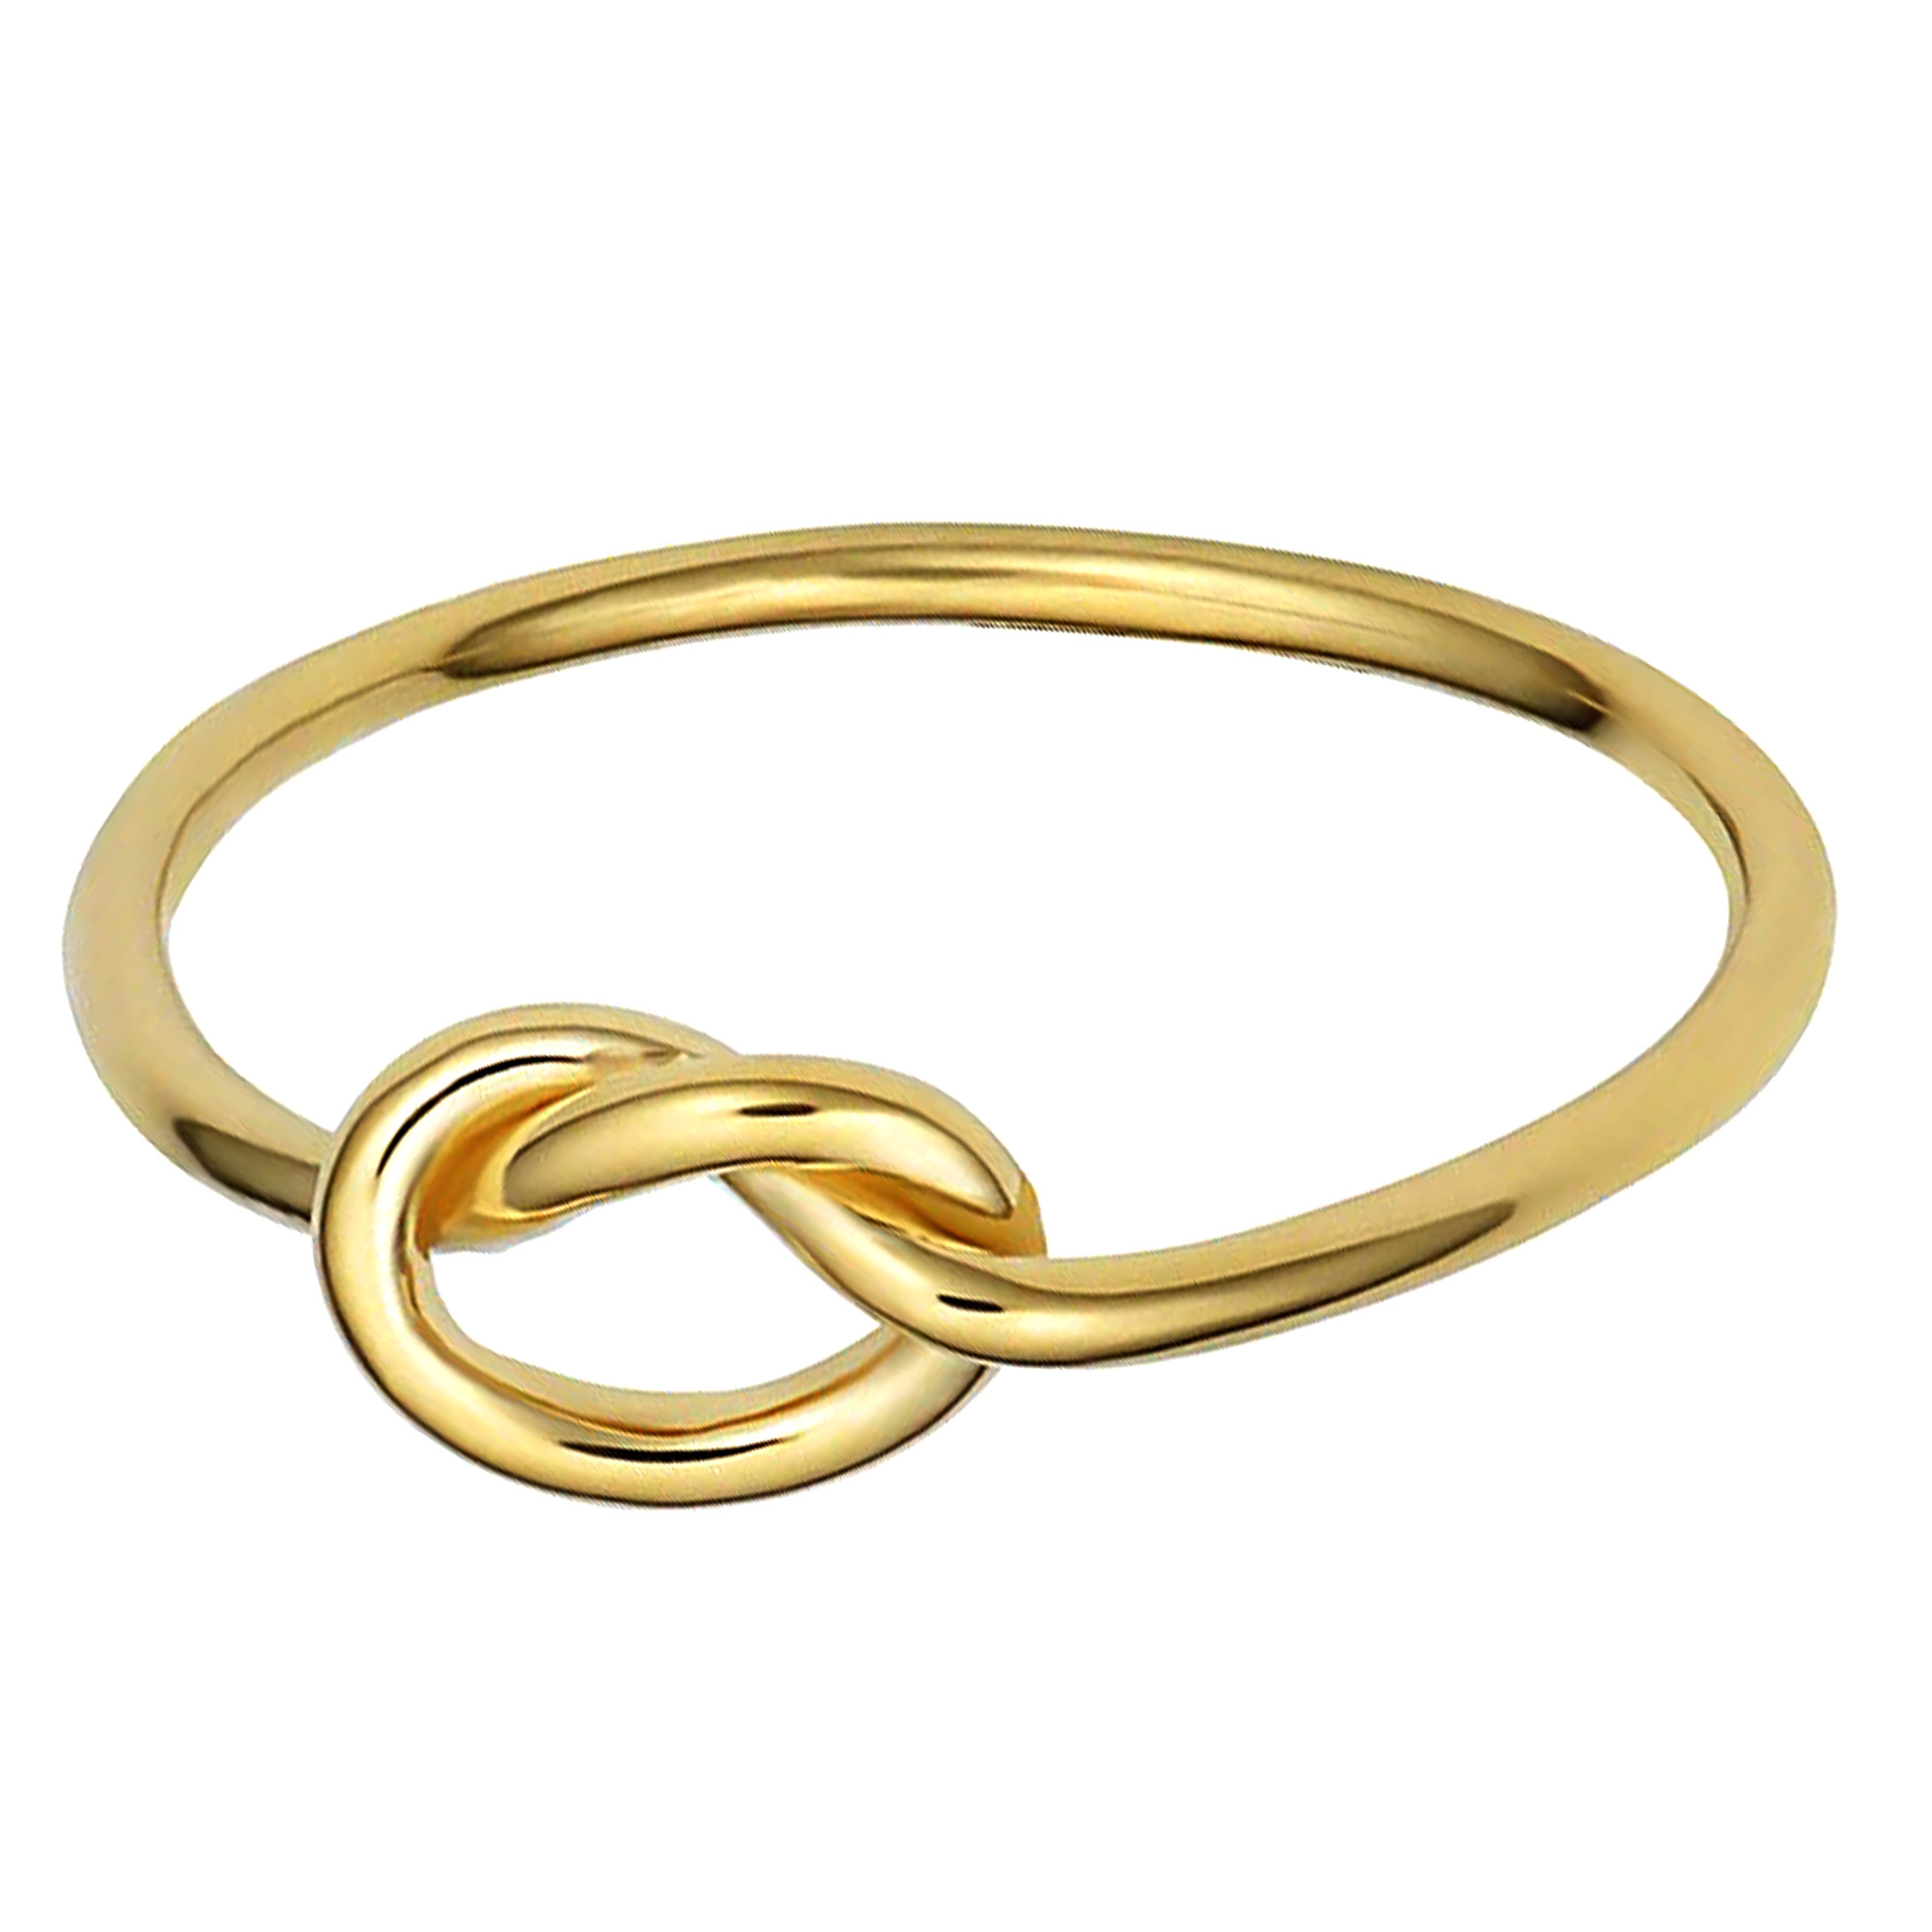 Rose White or Yellow Gold bridesmaids Ring Love Knot 14k Gold Stacking Ring 14k 18k Solid Gold Knot Ring Dainty Tie The Knot Ring